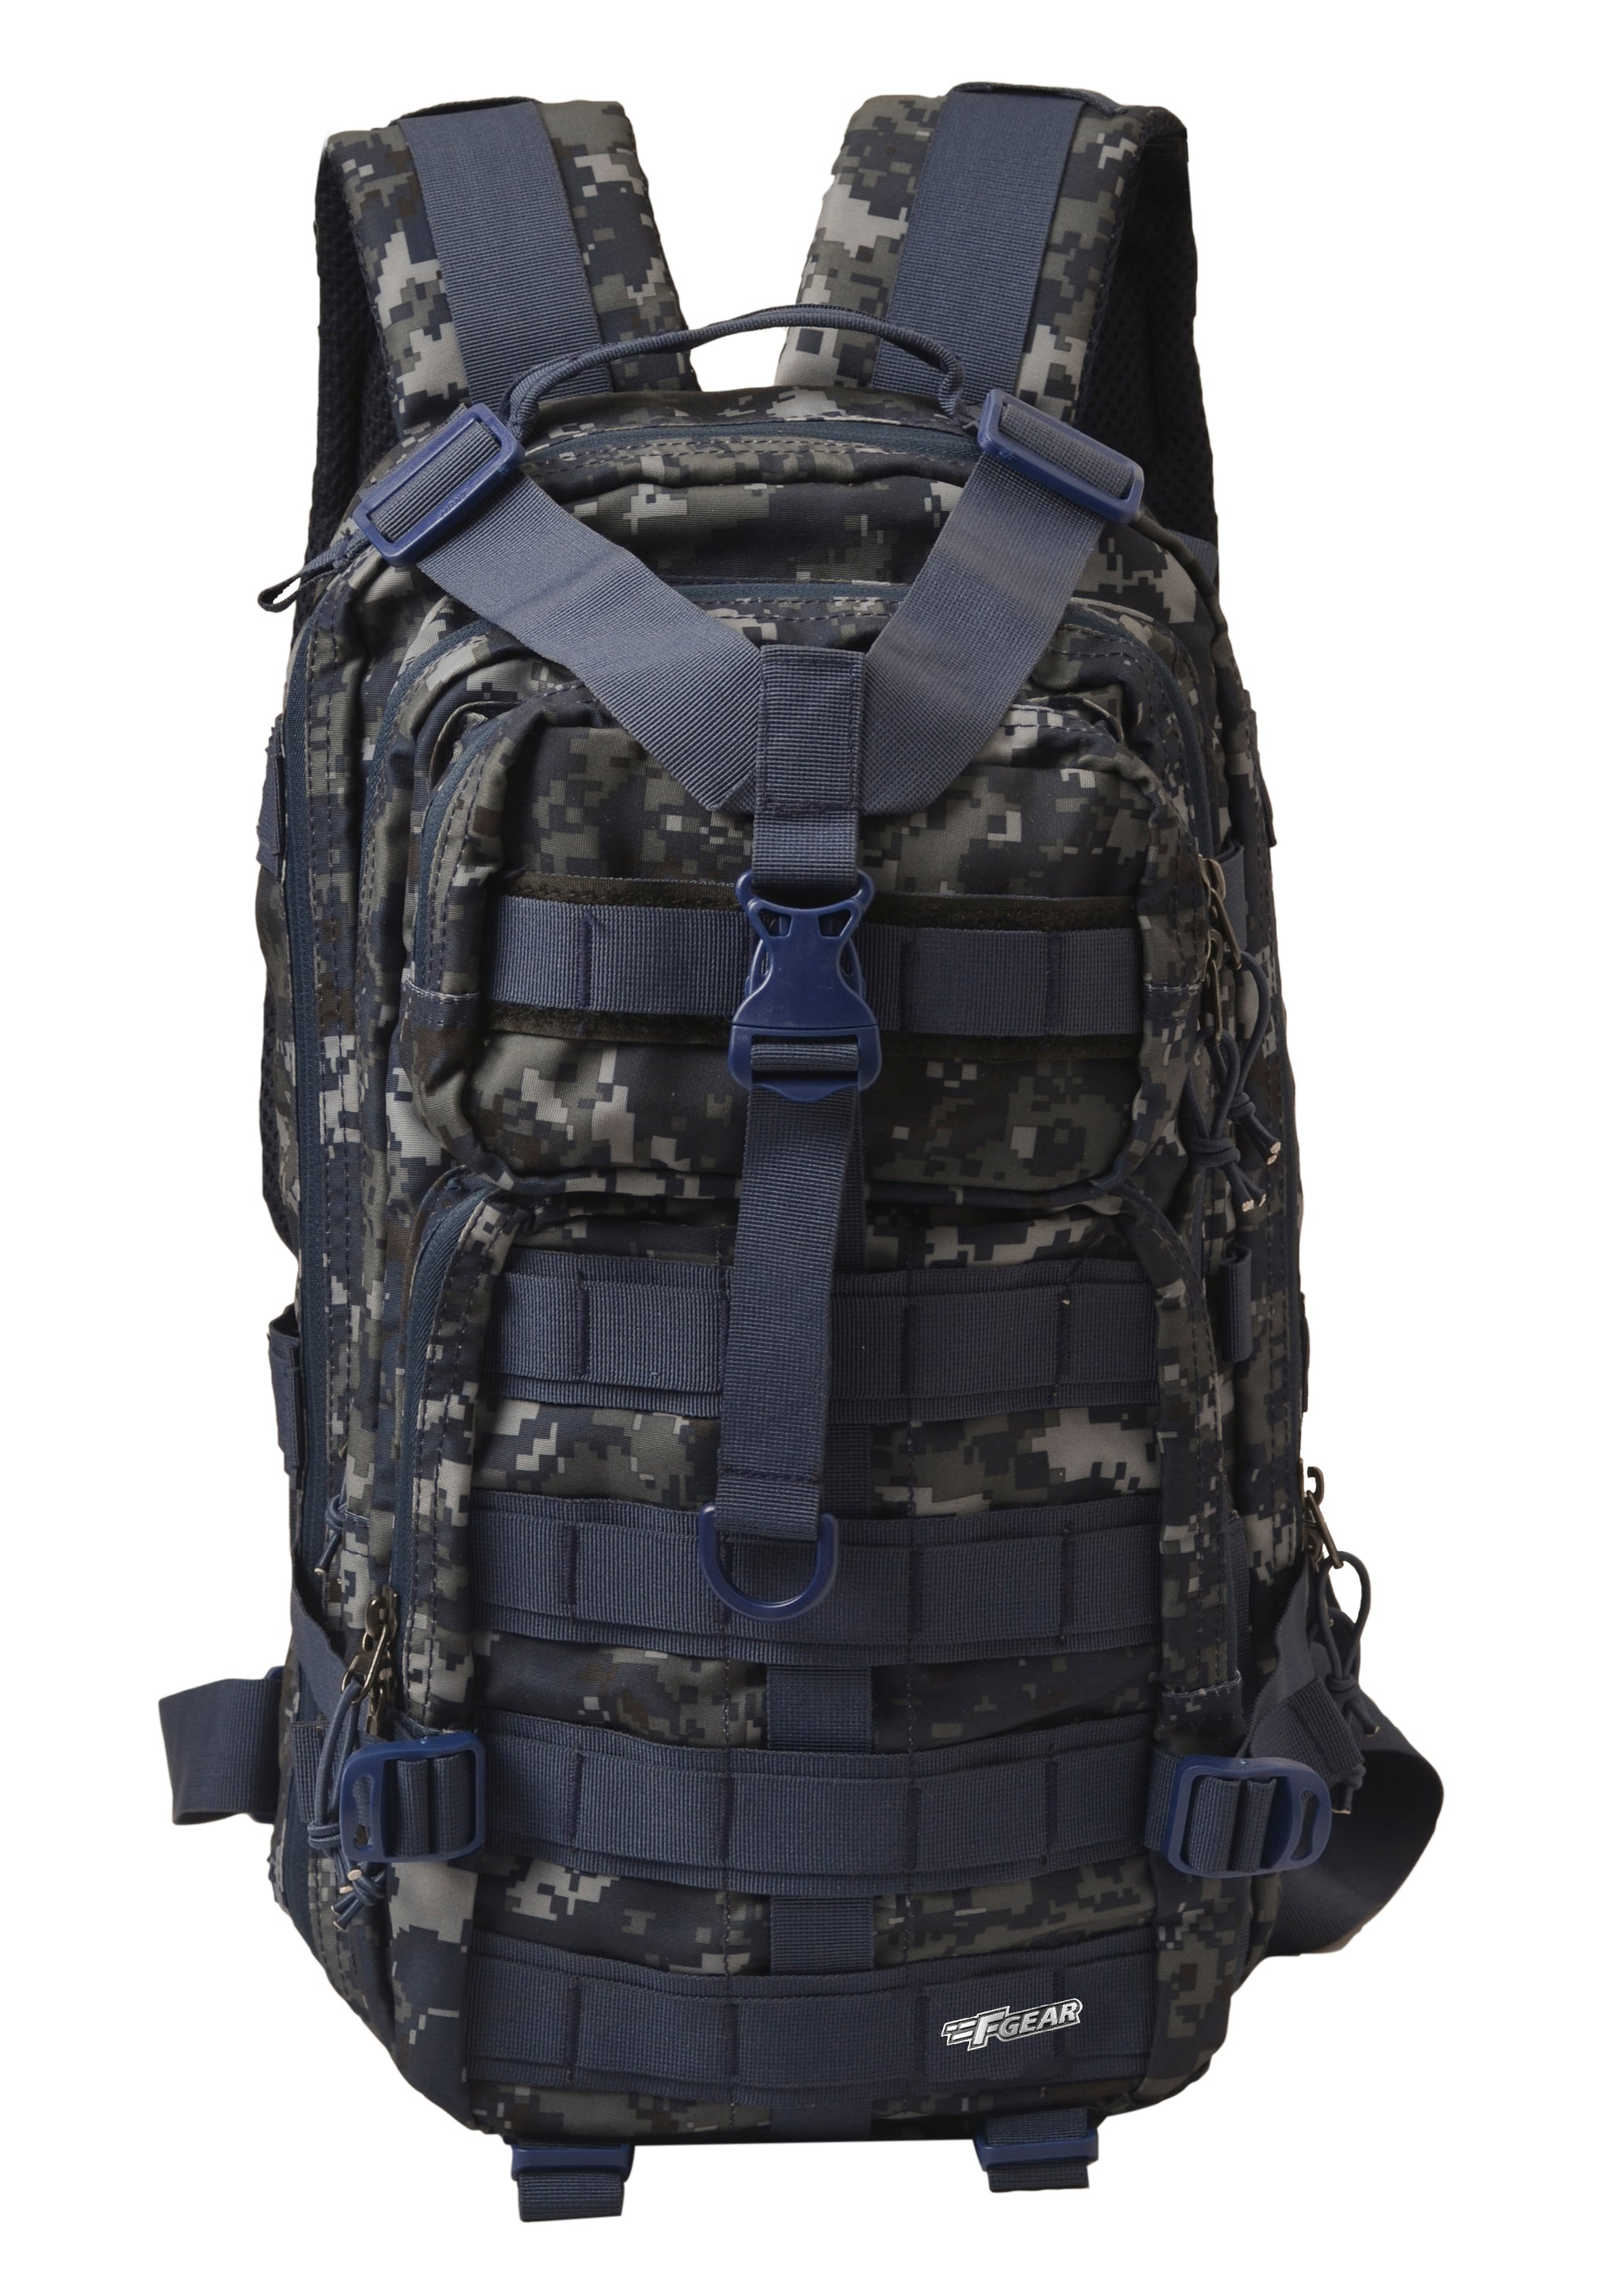 F Gear Military Tactical 29 Liter Backpack (Marpat Navy Digital Camo)